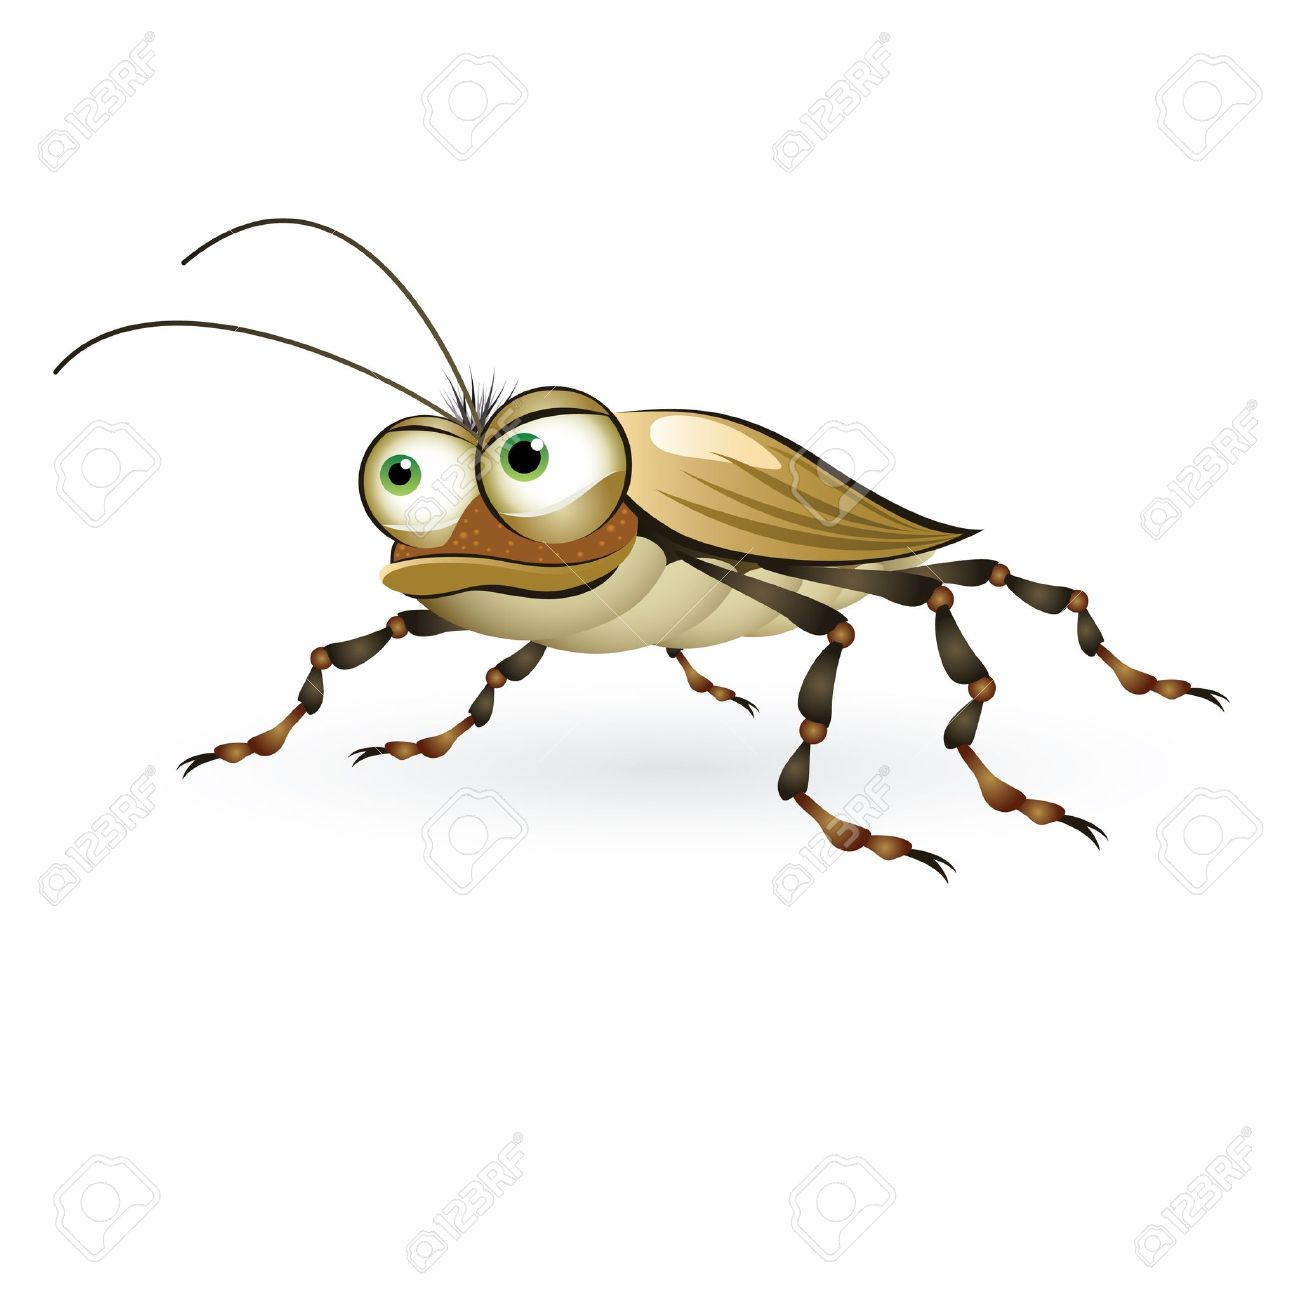 Cartoon beetle with a mysterious look. Illustration on white background Stock Vector - 9455263